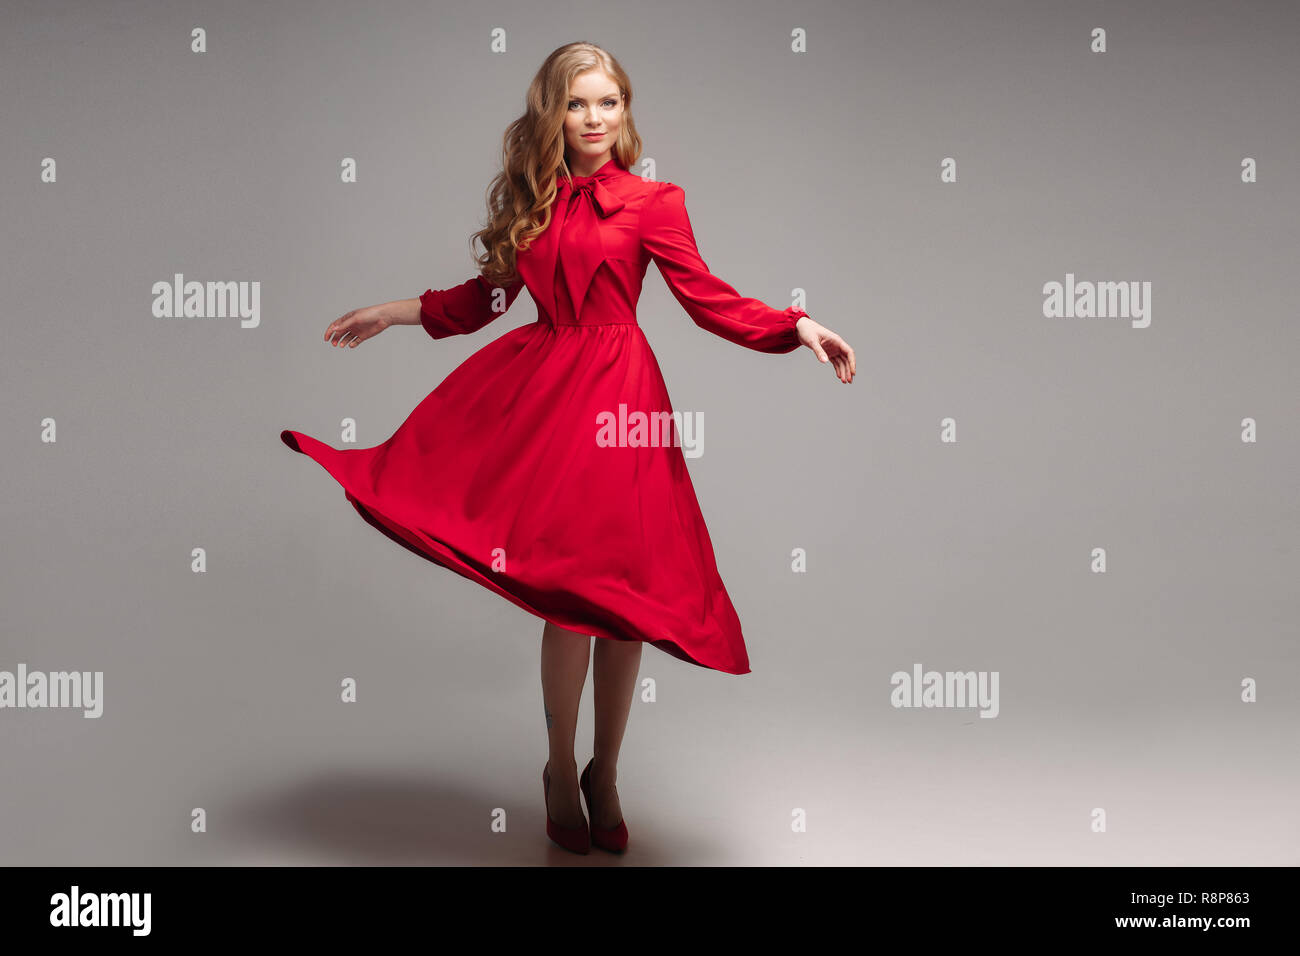 35692d827ea Stunning slim model in bright red dress and black heels Stock Photo ...